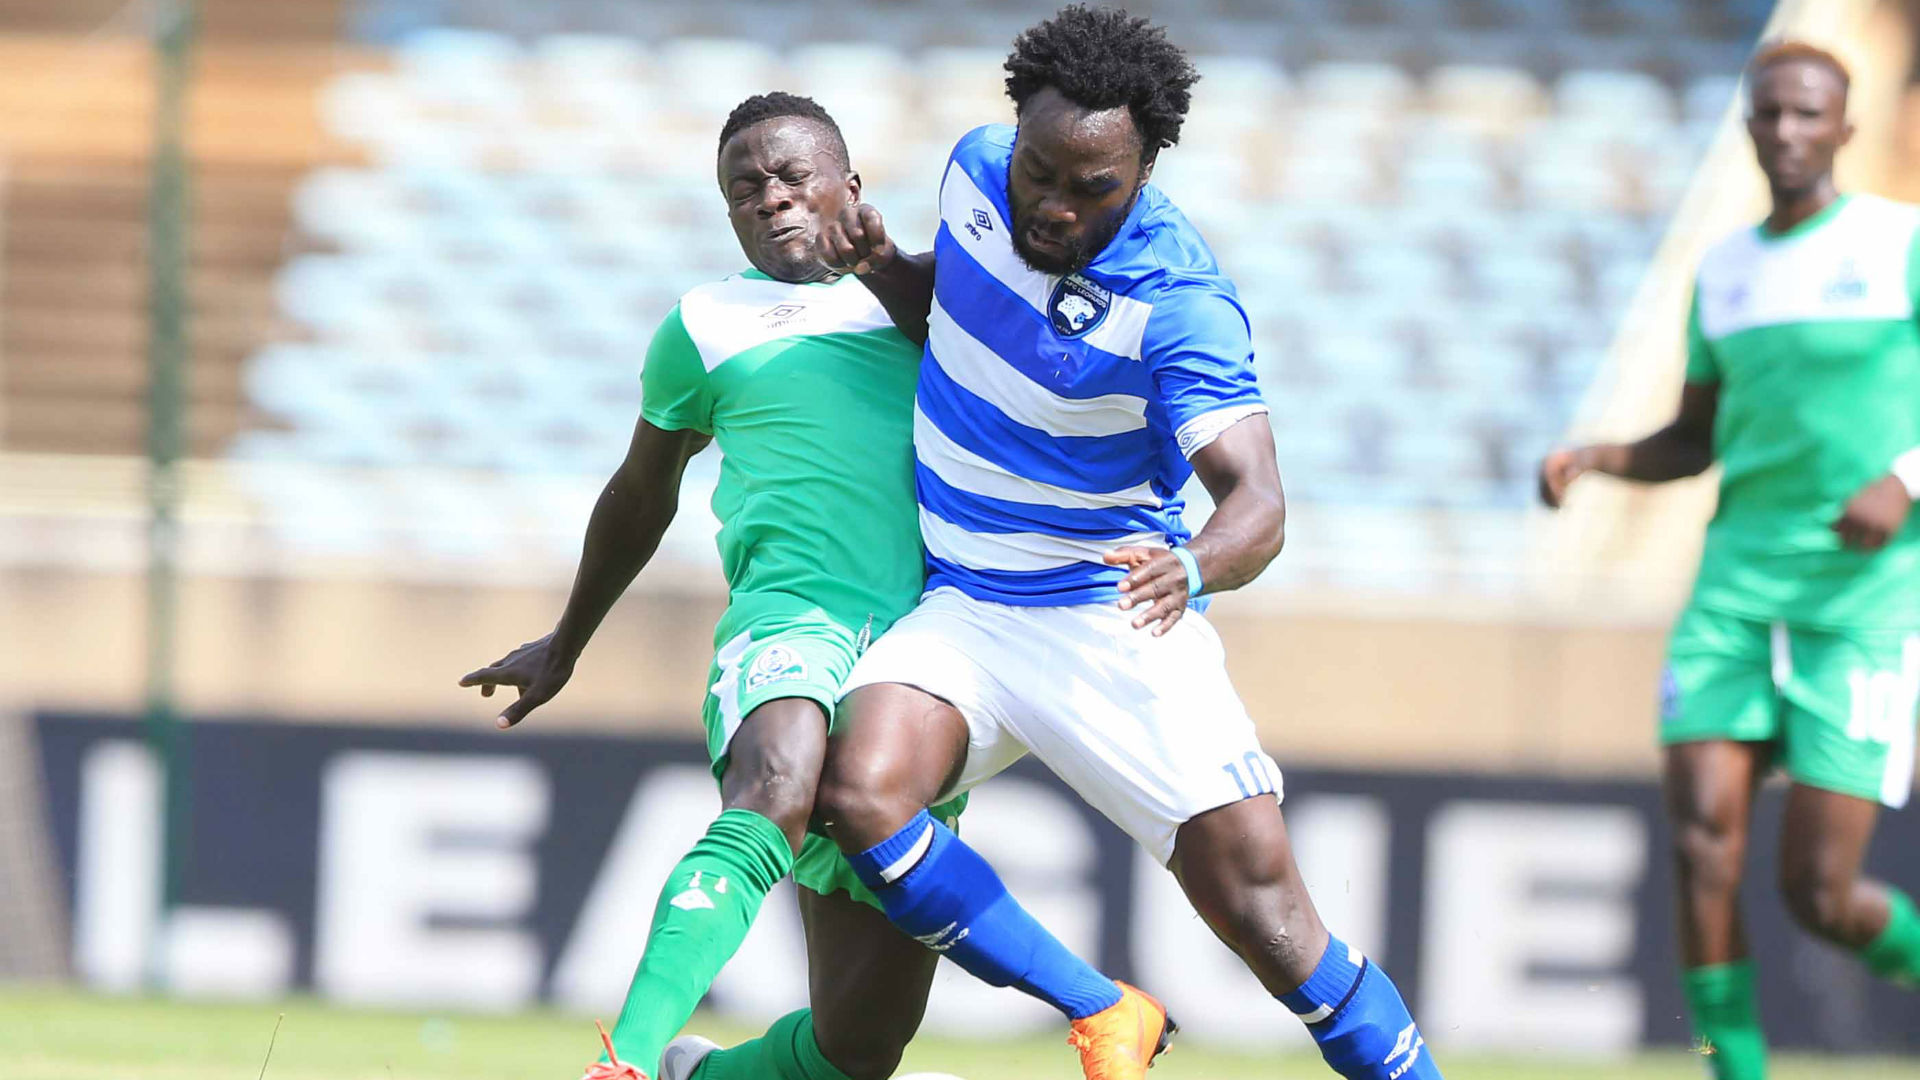 FKF PL: AFC Leopards to host rivals Gor Mahia in first derby of the season | Goal.com